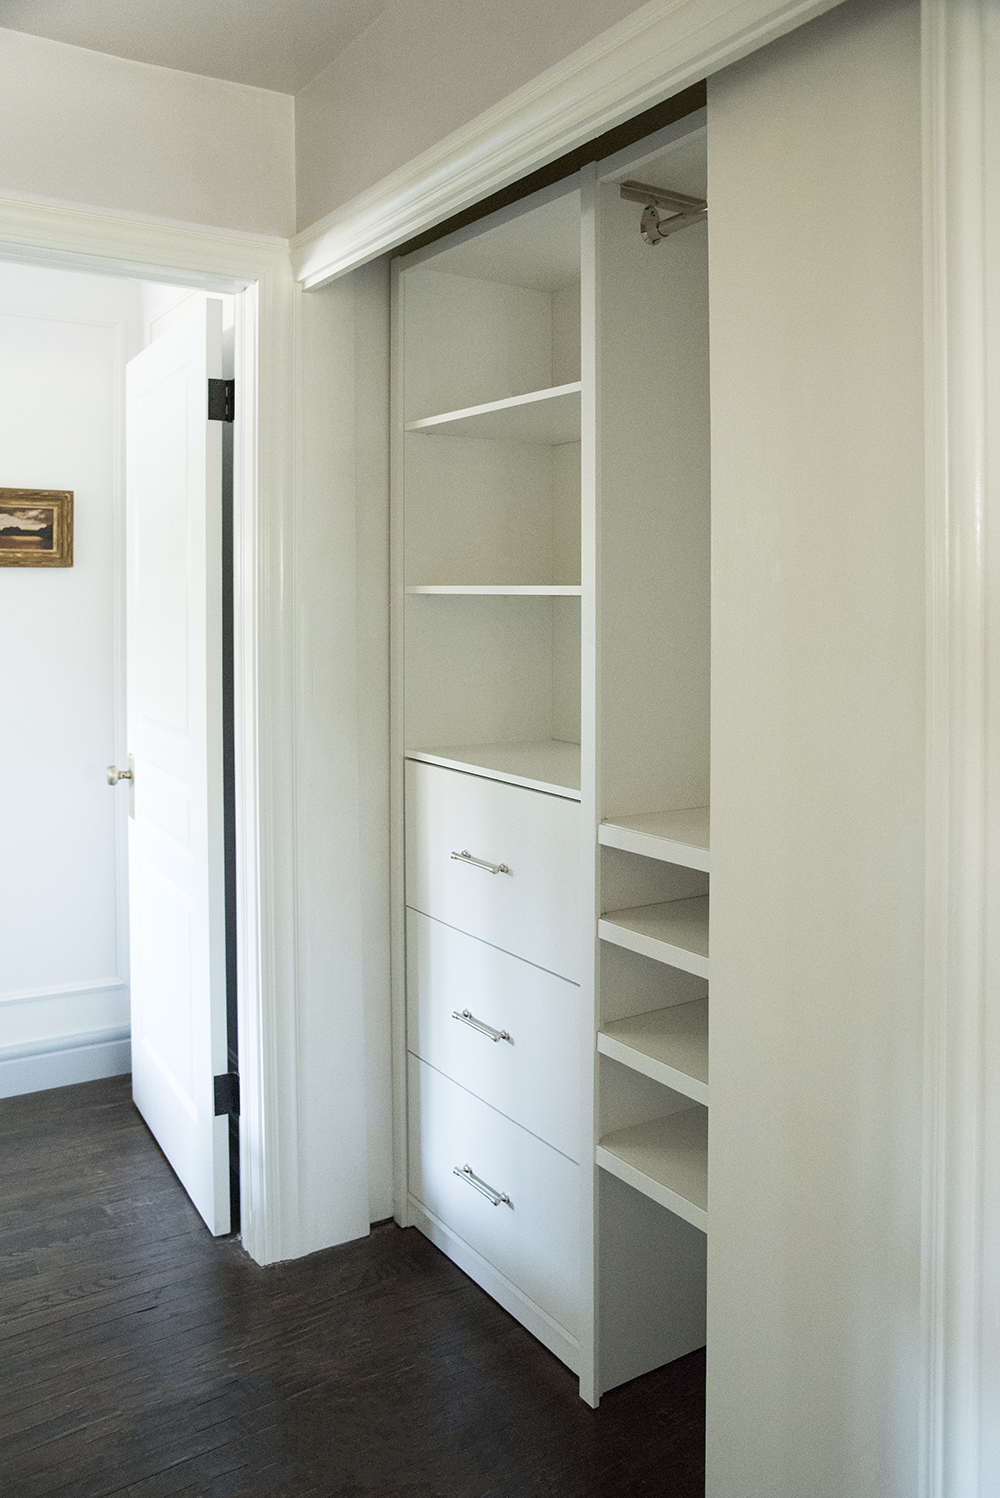 ideas love in men this freshome who image room closet walk collect masculine their for design com idea